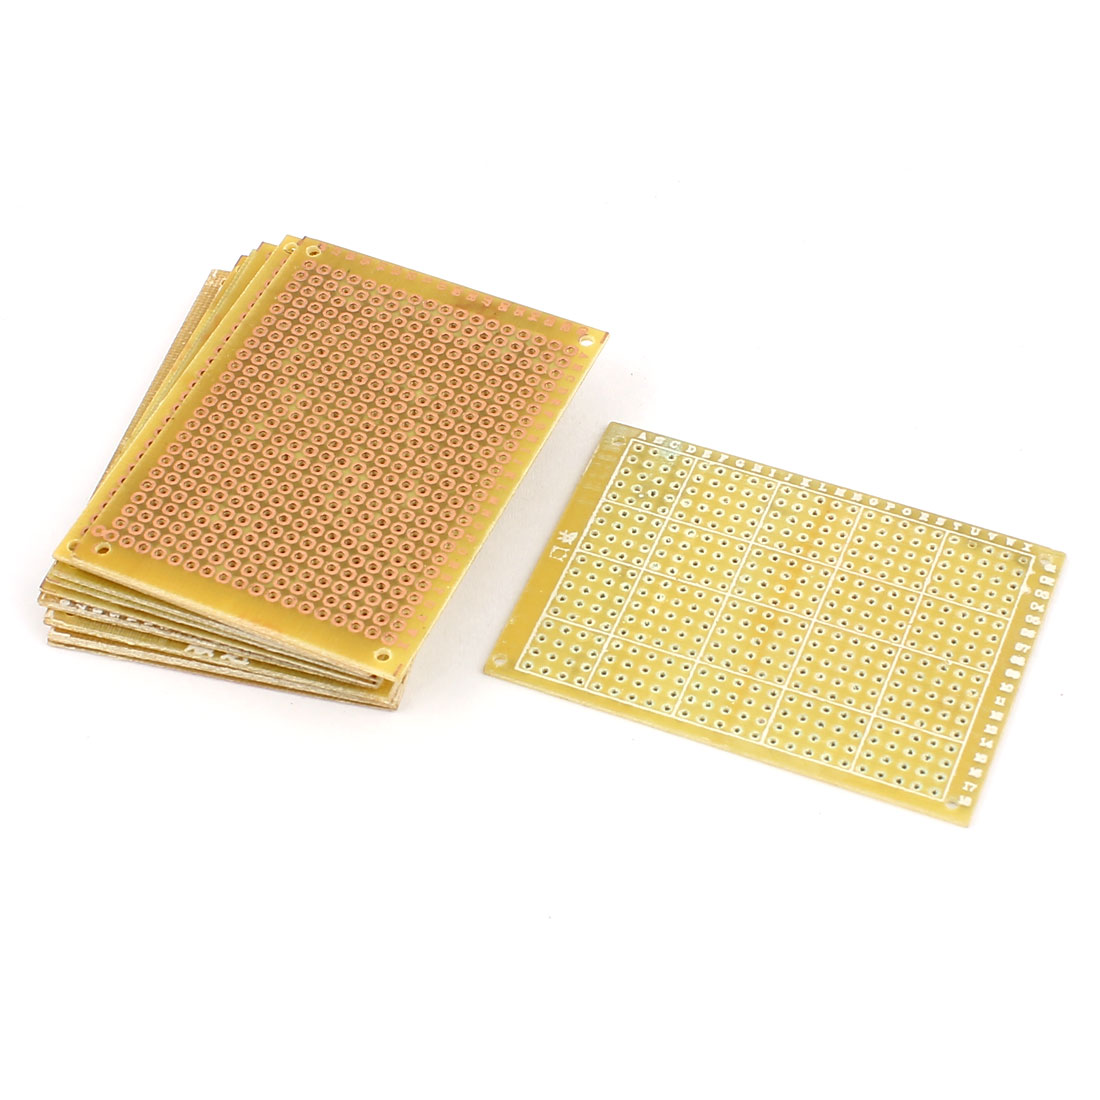 5 x 7cm Electronic DIY Prototype Paper Single Side PCB Board 10Pcs